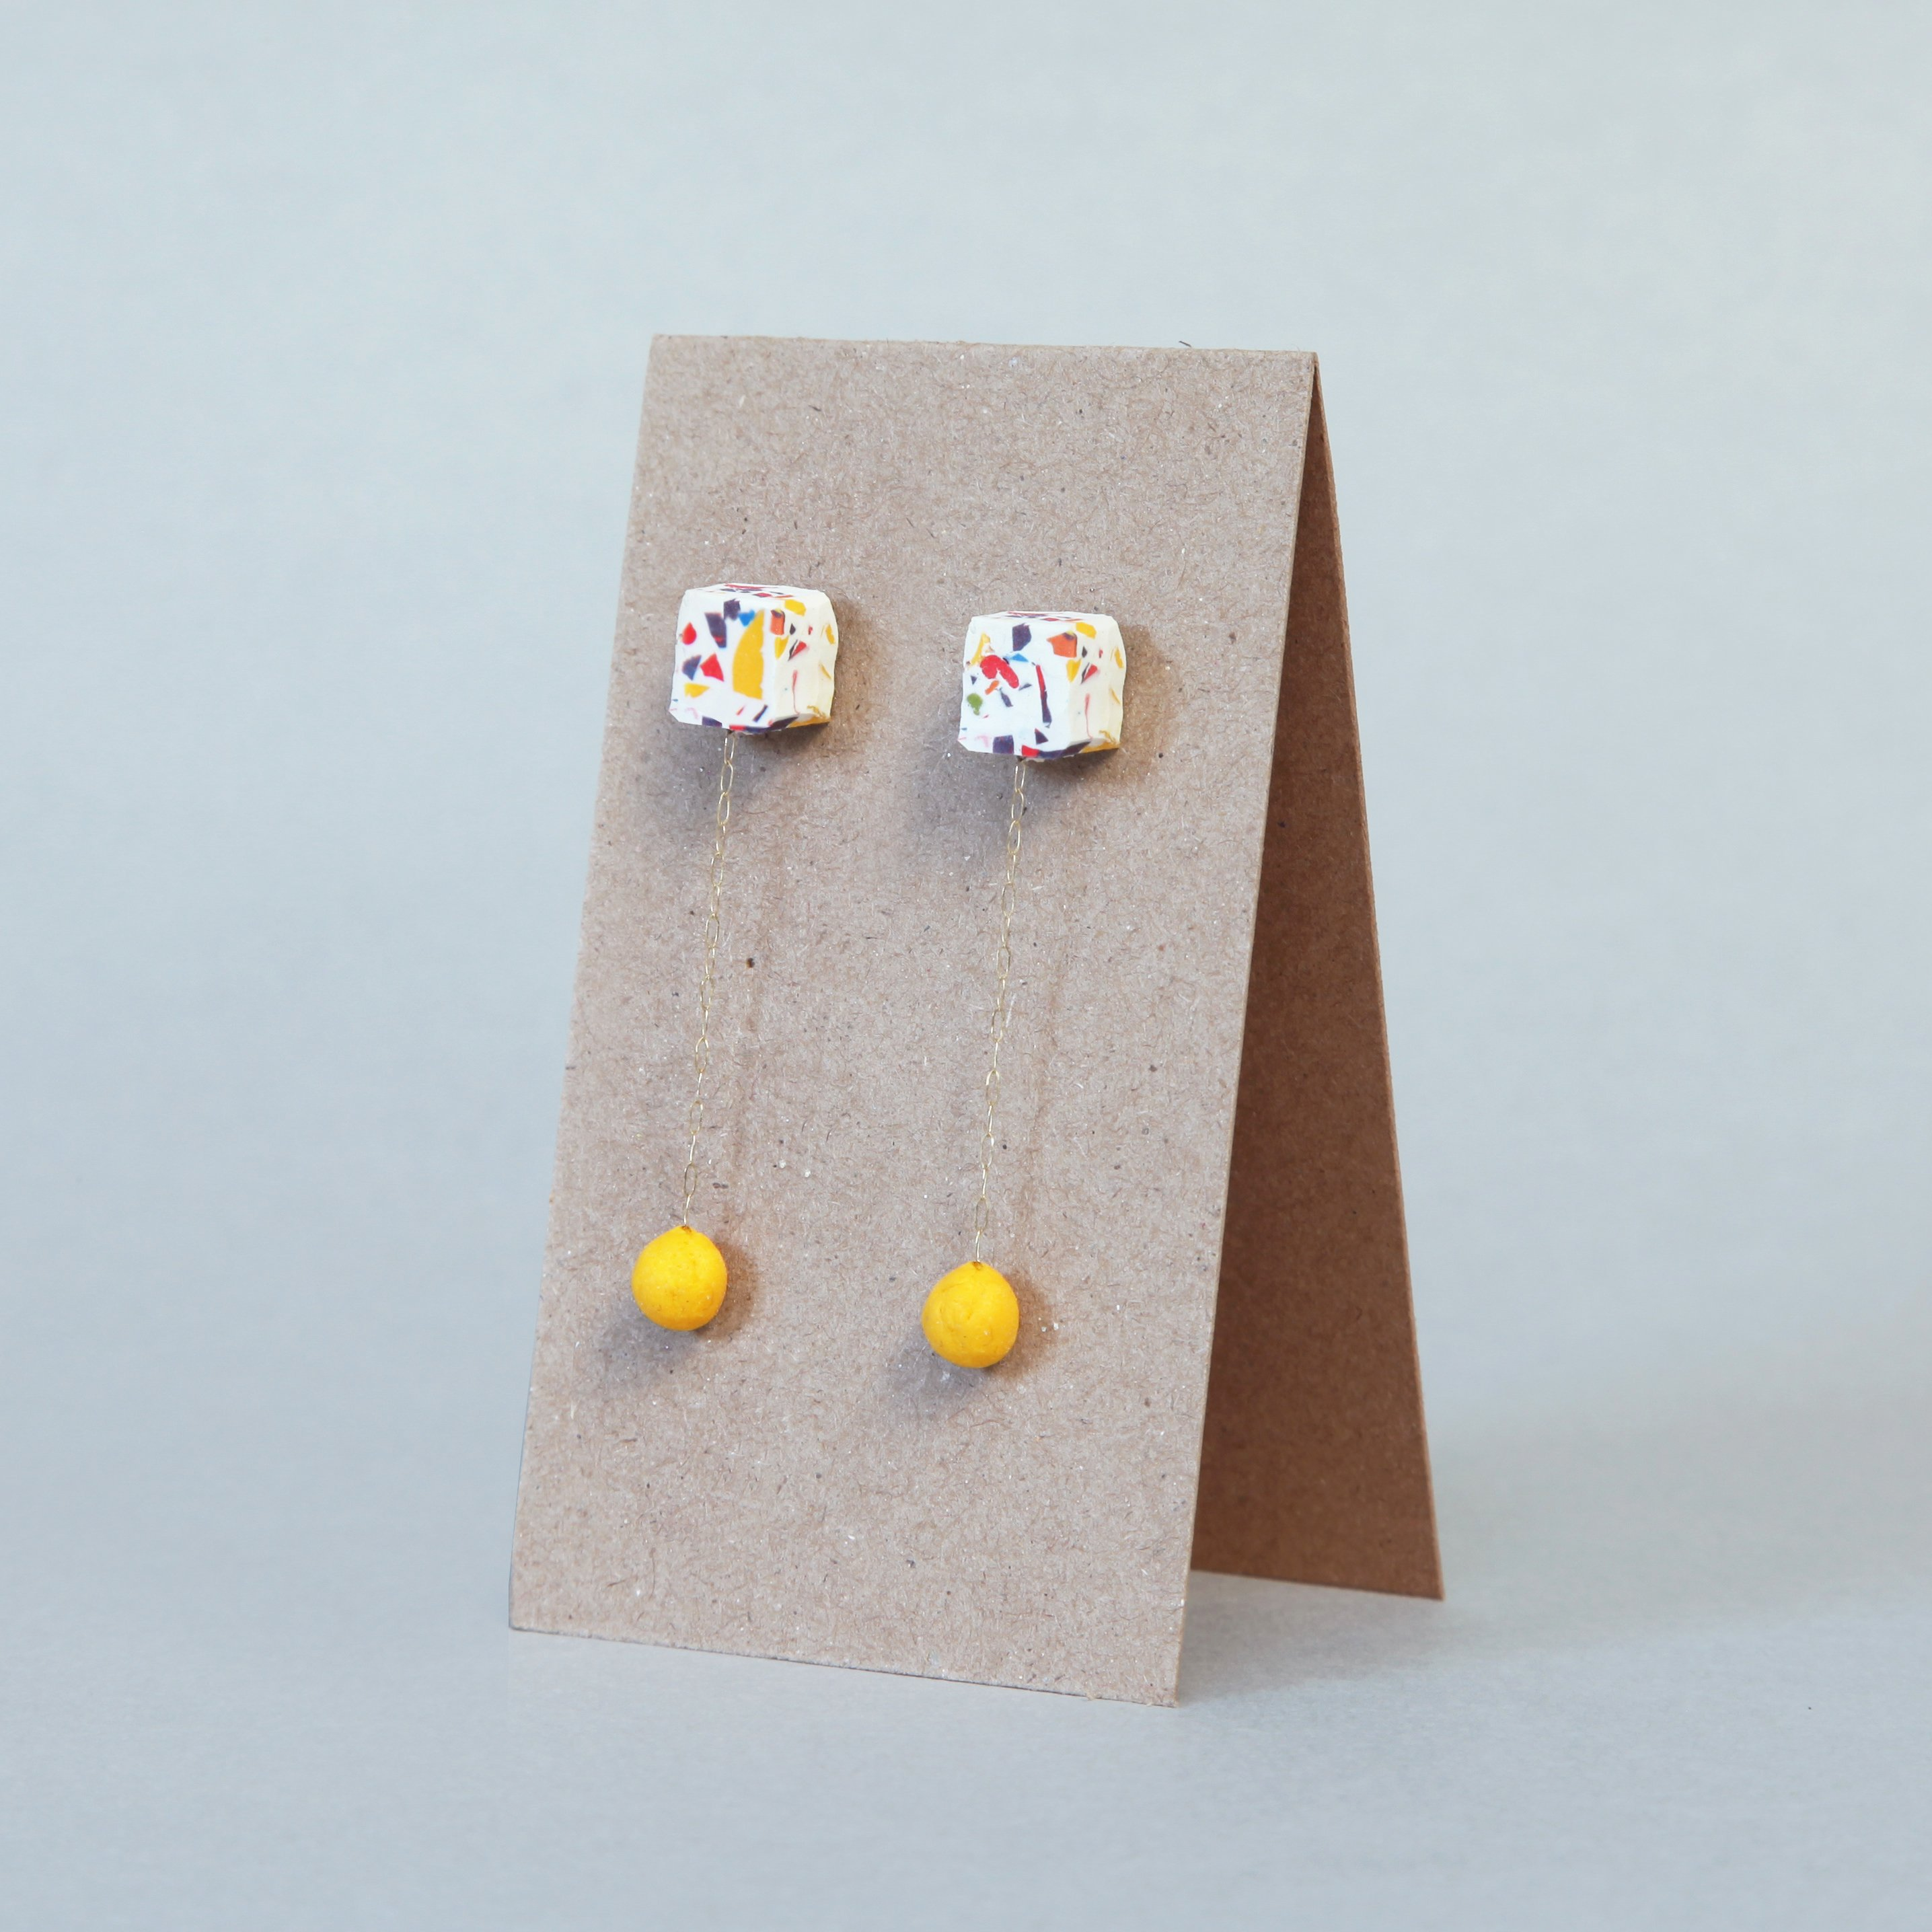 earrings made with sugru